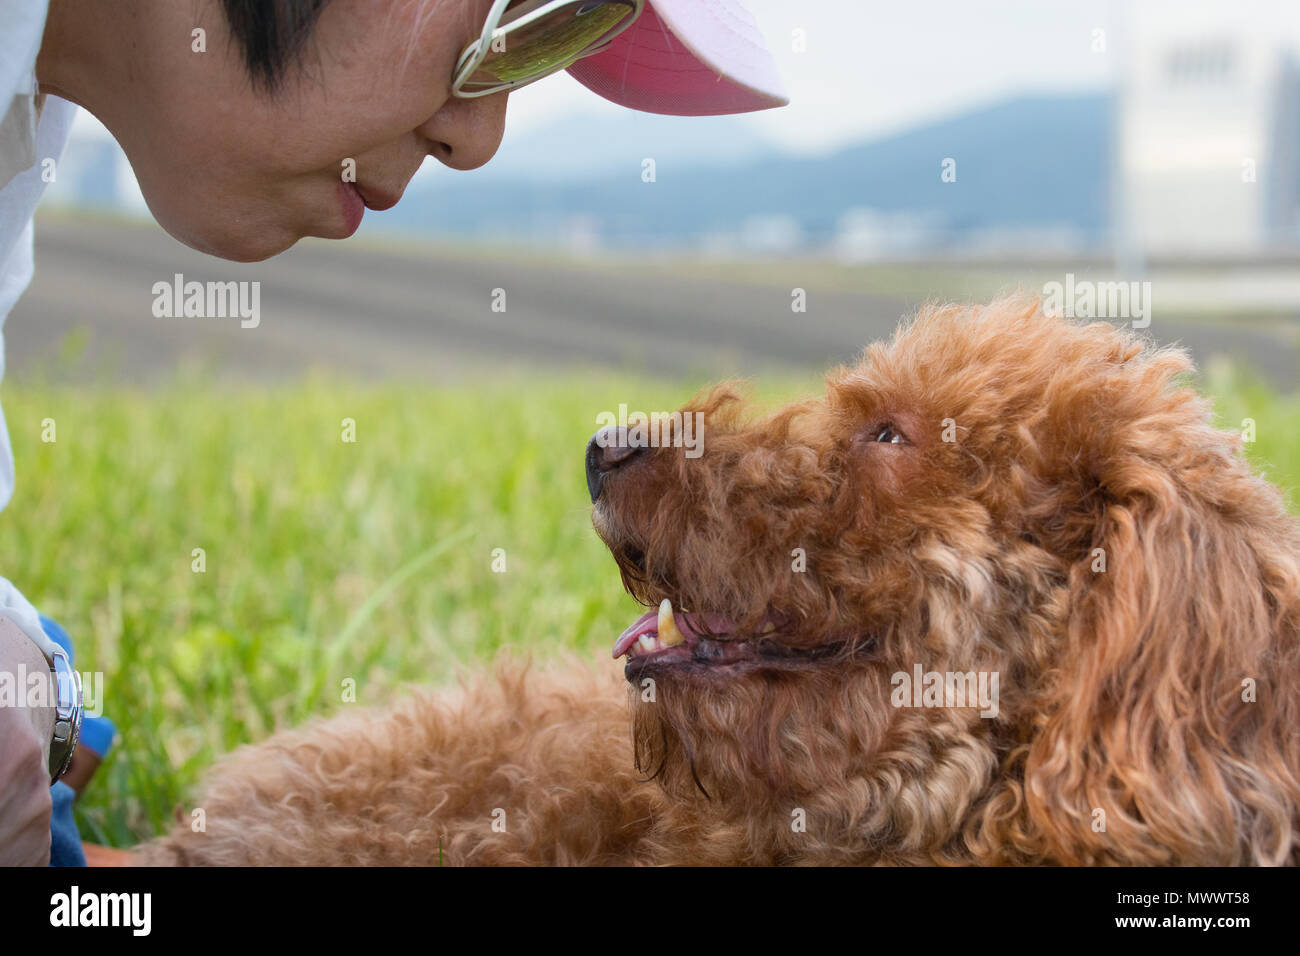 Close up of Taiwanese woman of Chinese descent and chocolate brown poodle looking into each others eyes Stock Photo